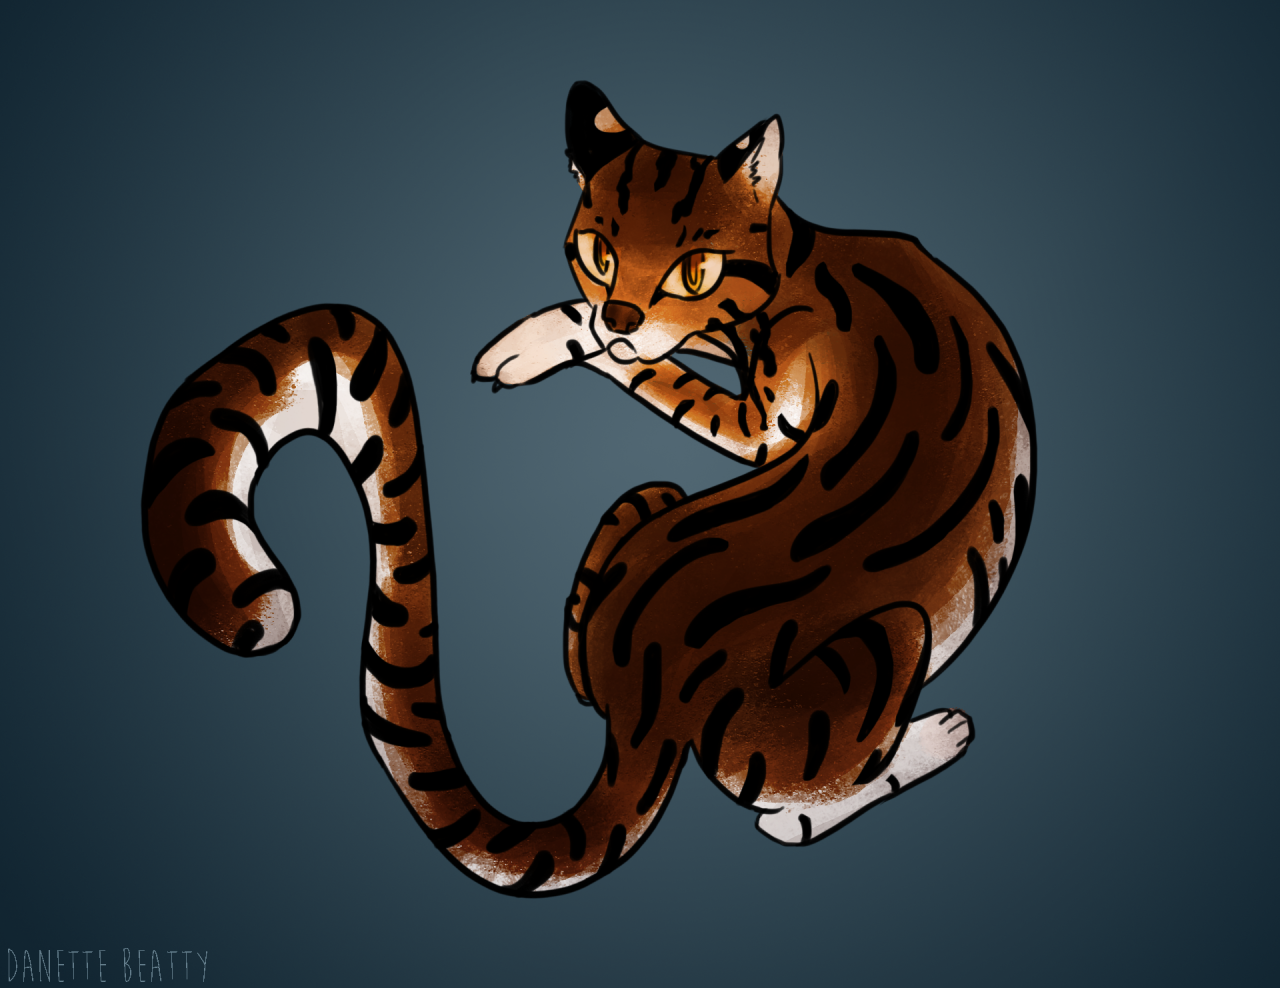 Daily paint #77 is an Ocelot for national cat day!